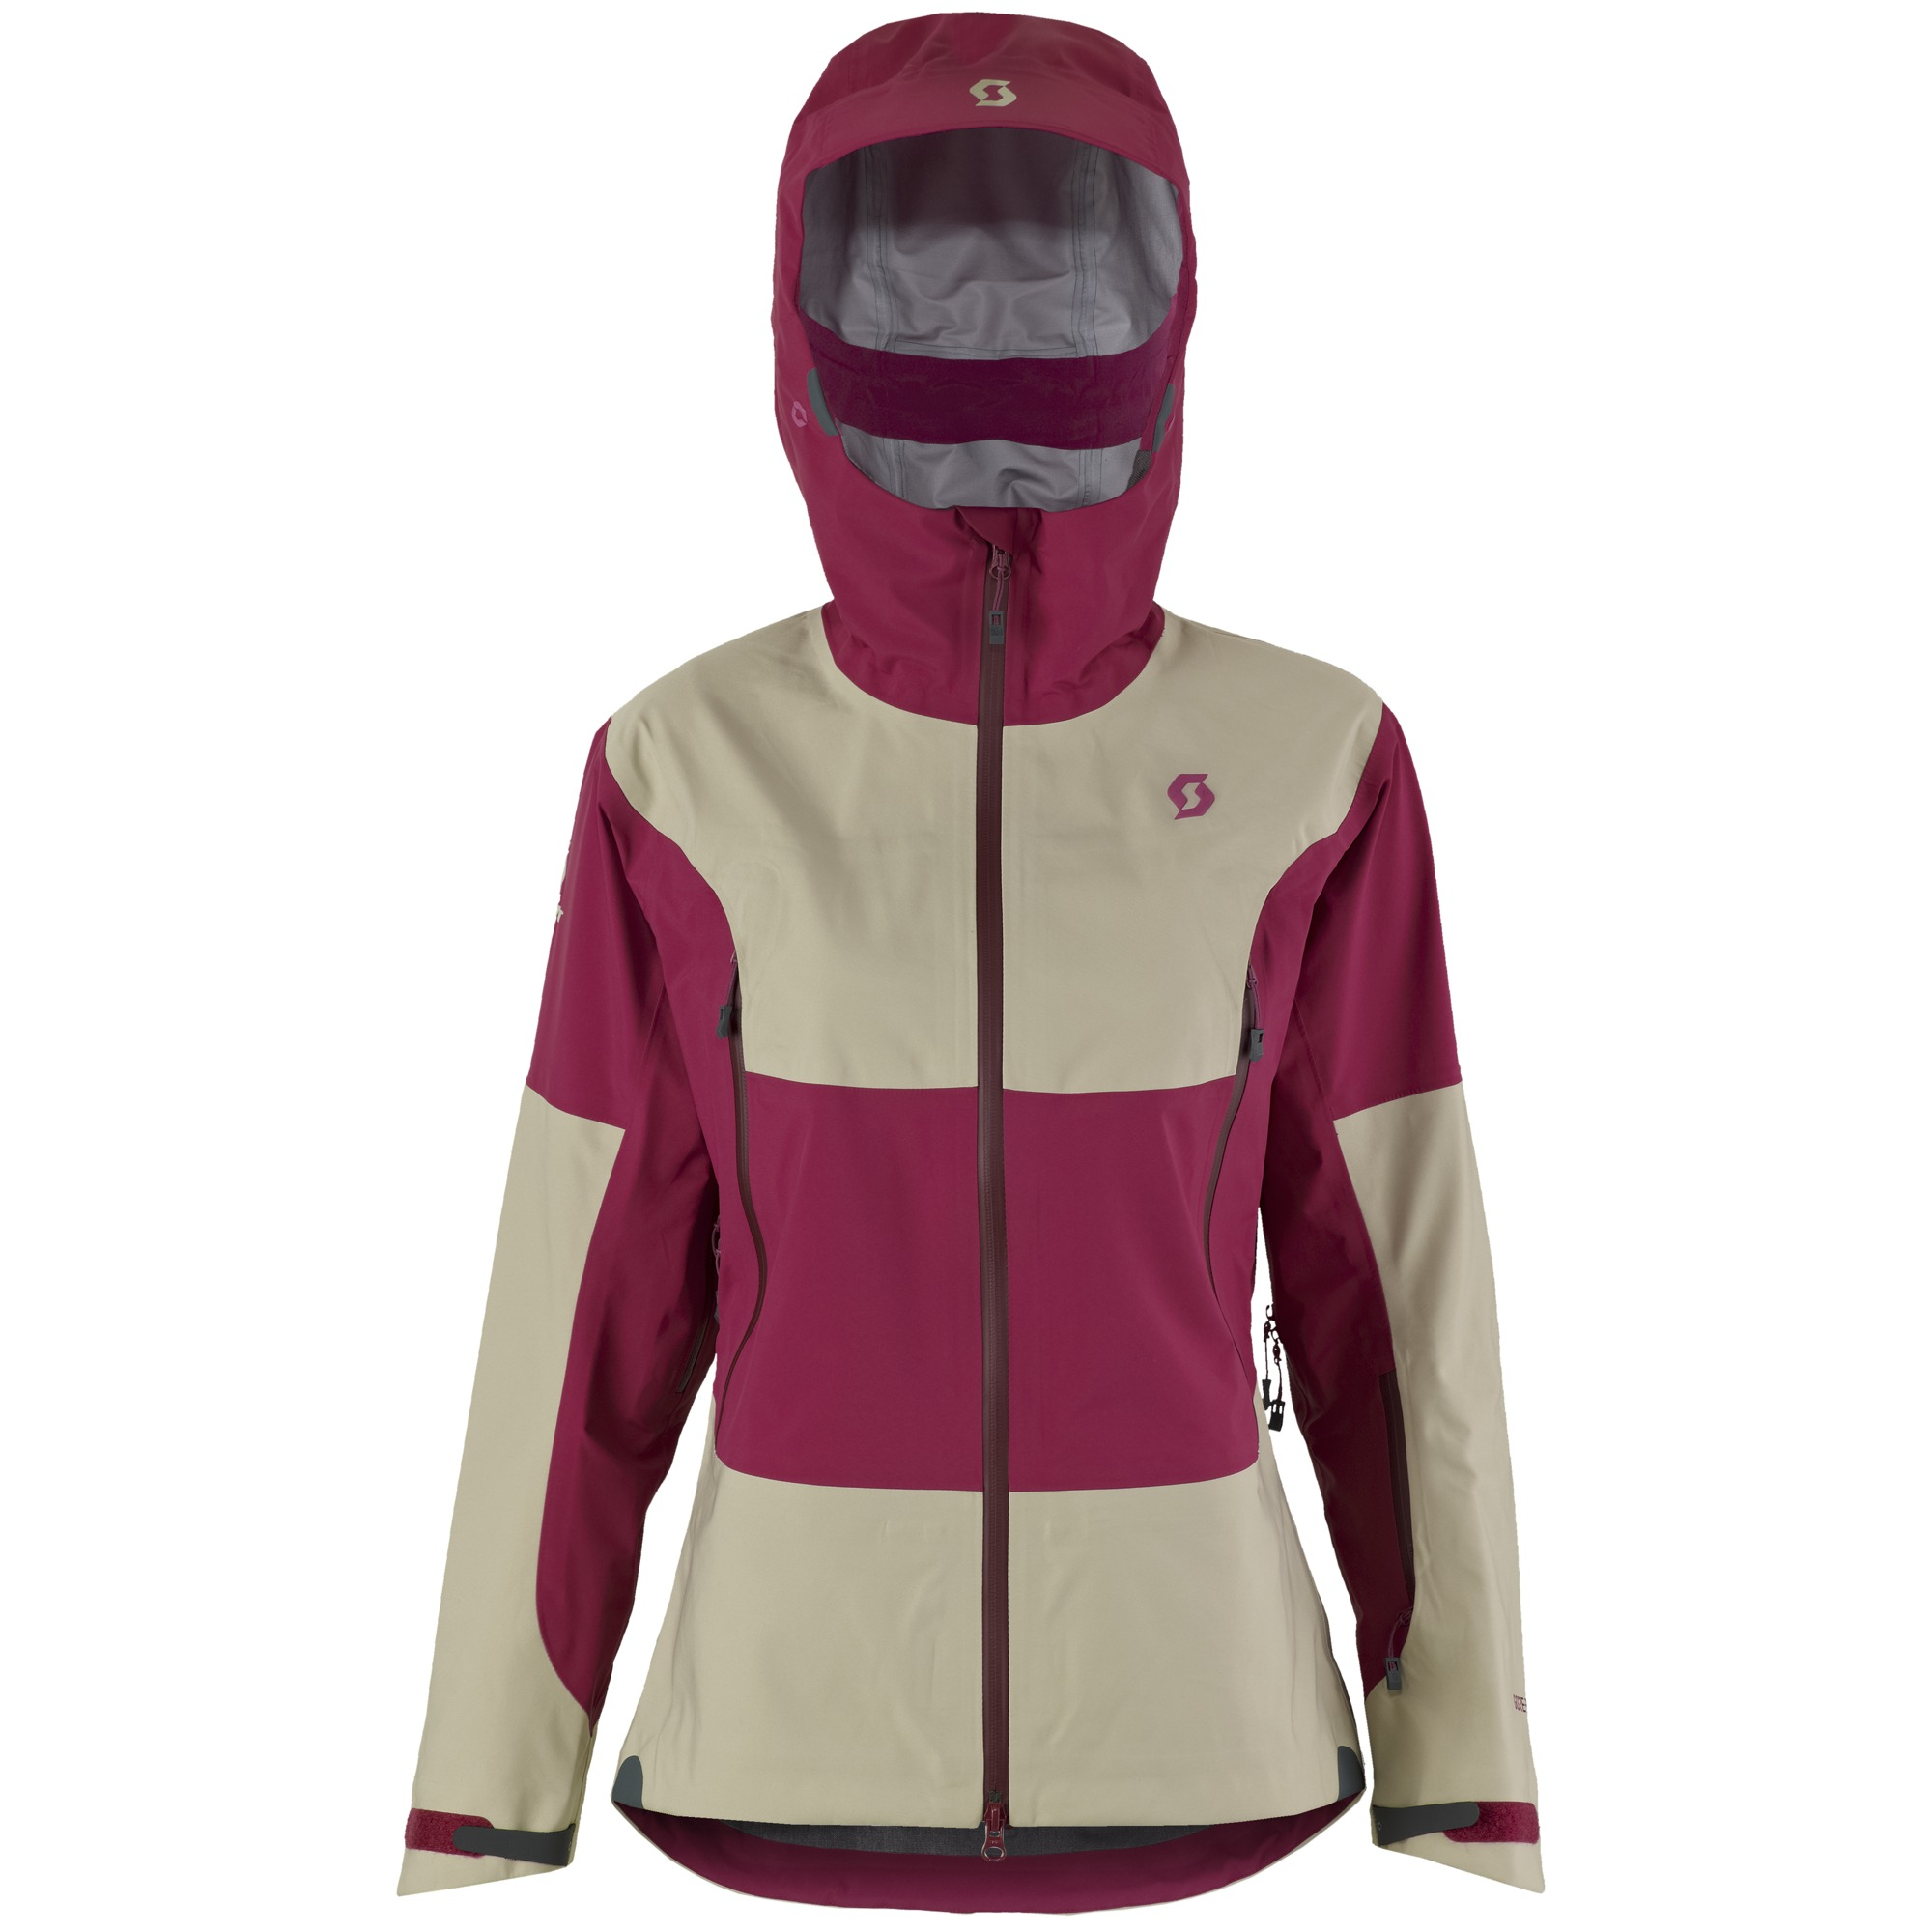 SCOTT Vertic Tour Women's Jacket